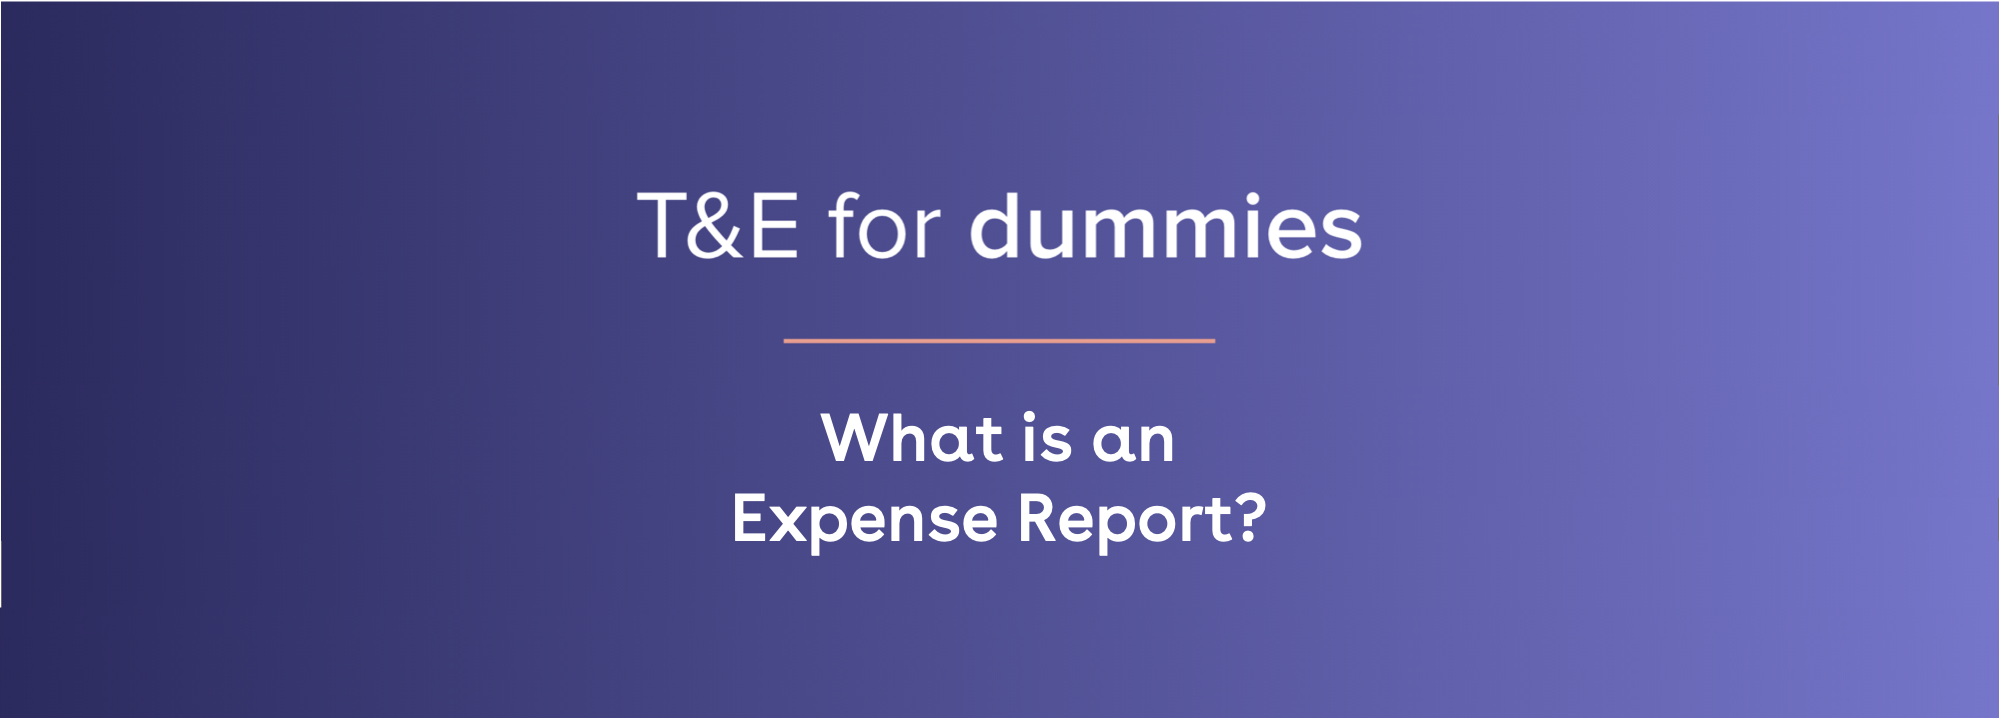 what is an expense report